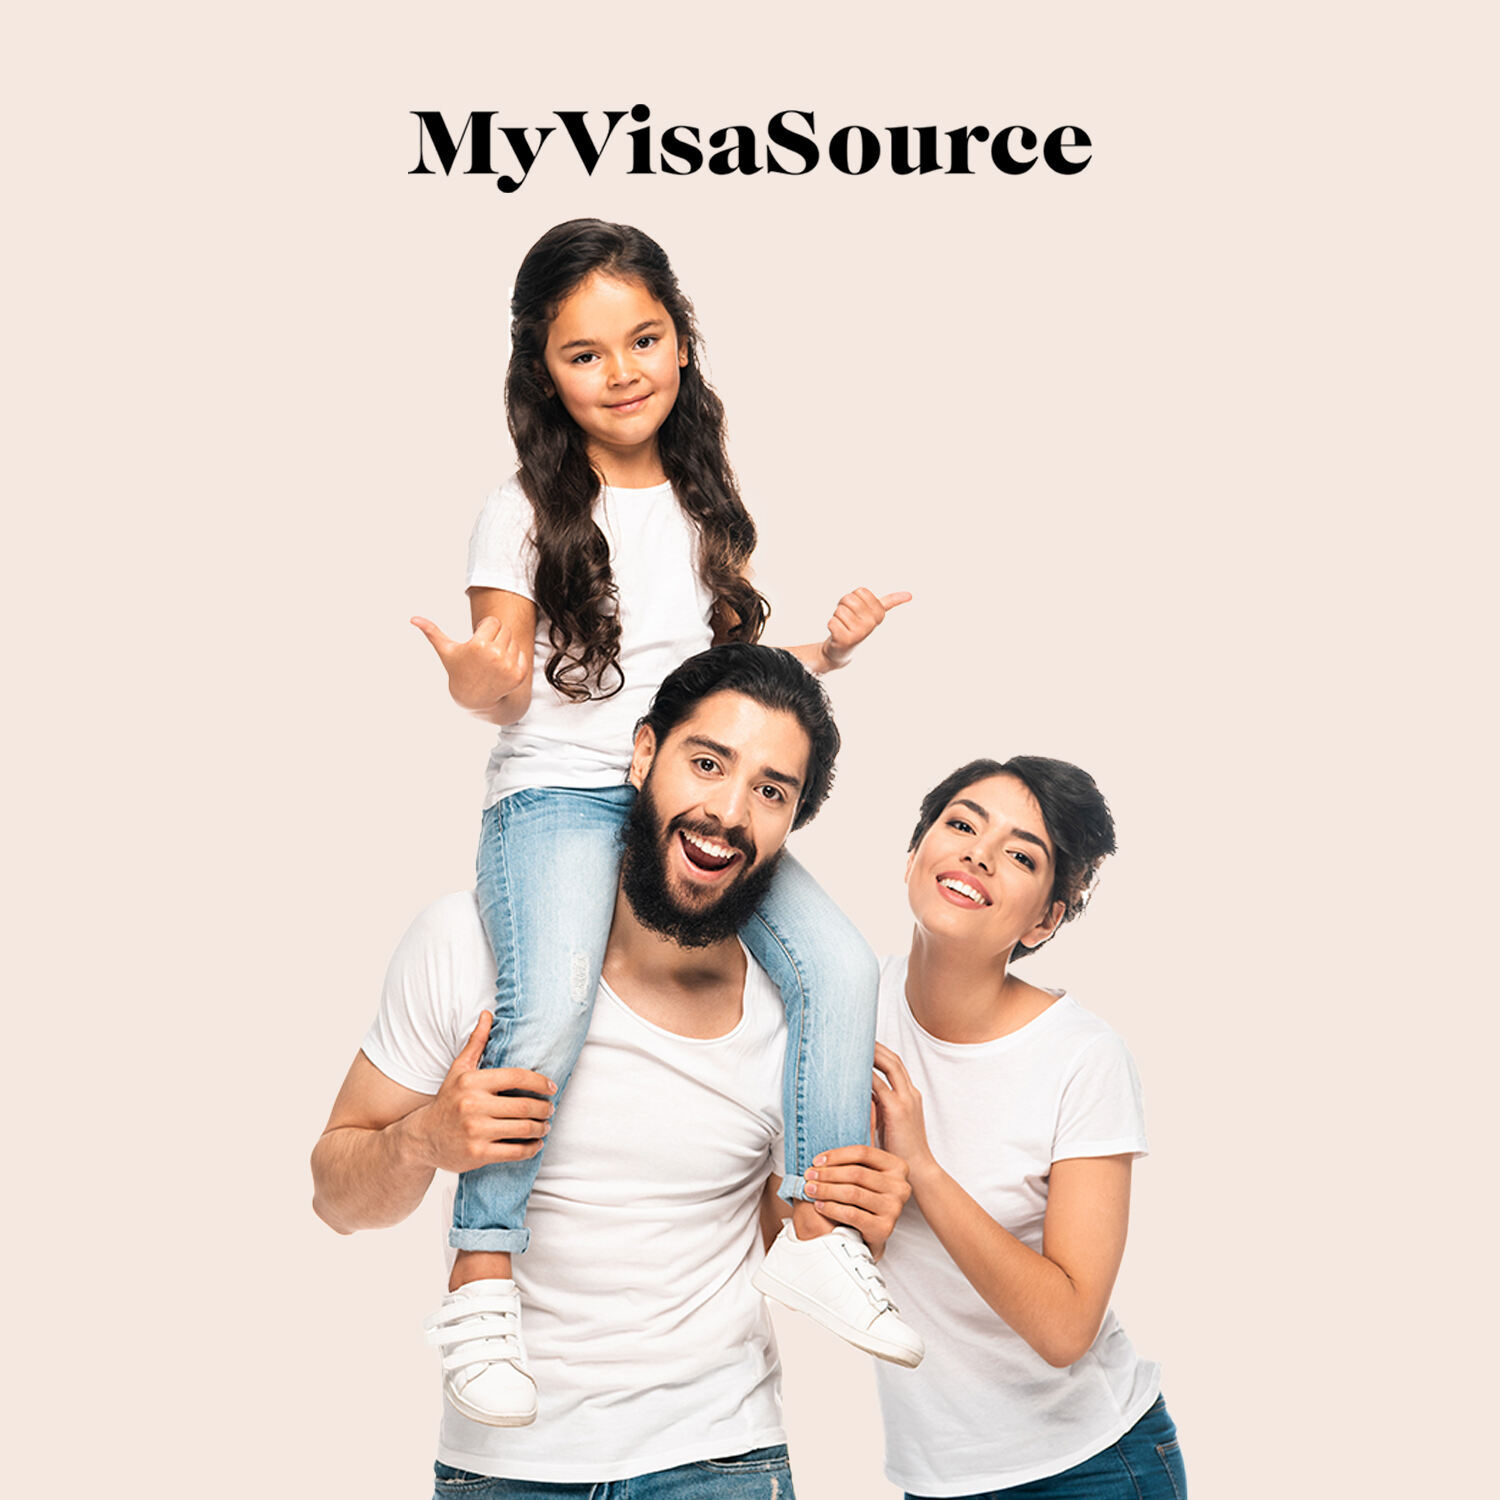 happy family with daughter on fathers shoulders wife beside my visa source